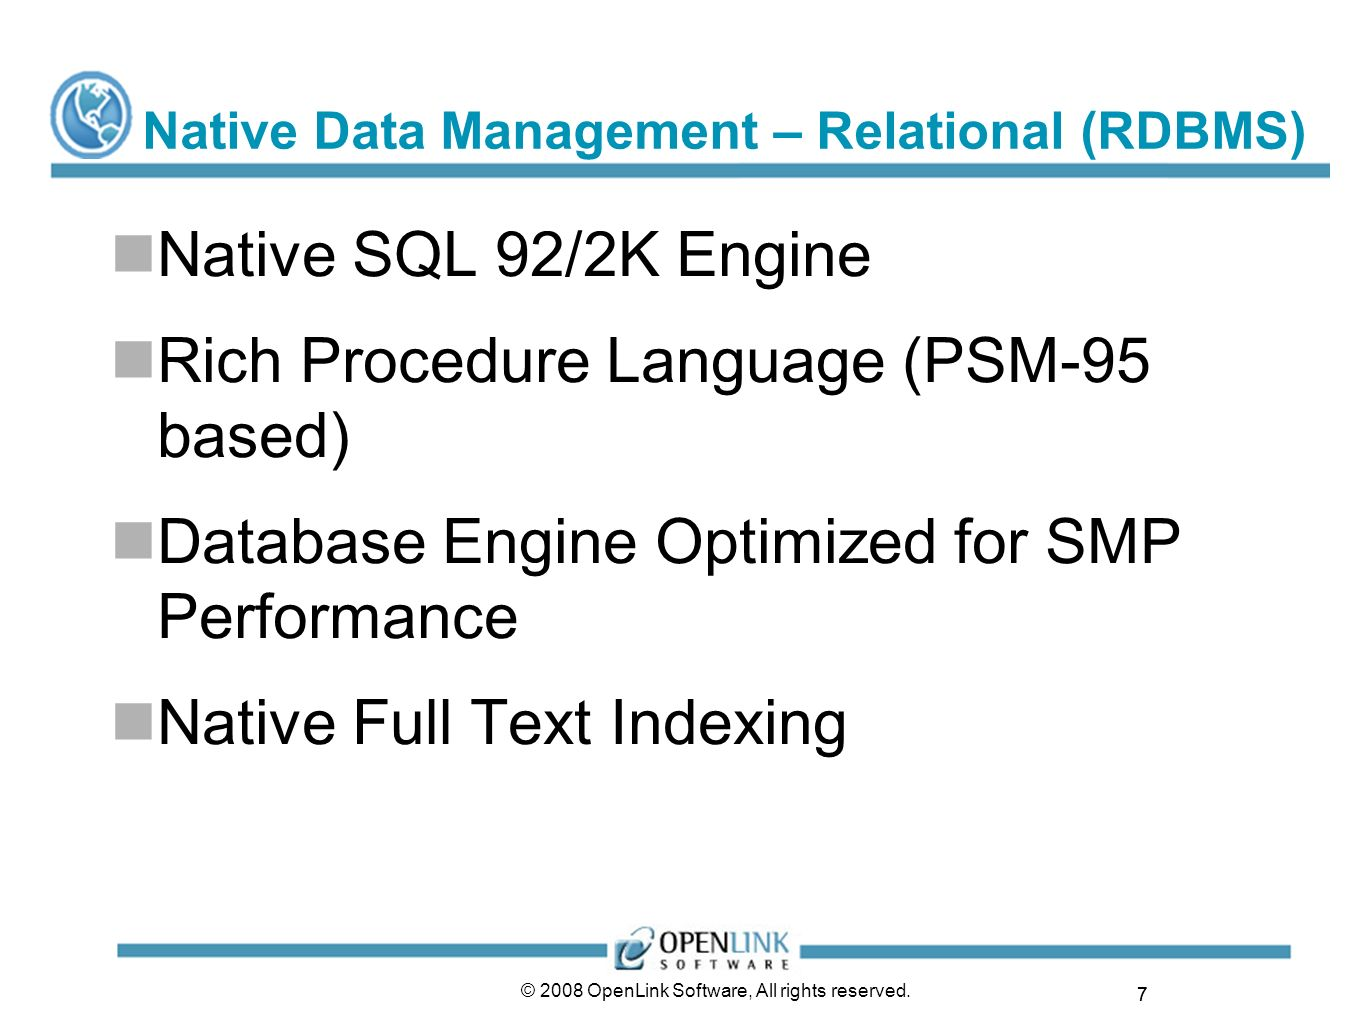 7 © 2008 OpenLink Software, All rights reserved. Native Data Management – Relational (RDBMS) Native SQL 92/2K Engine Rich Procedure Language (PSM-95 b